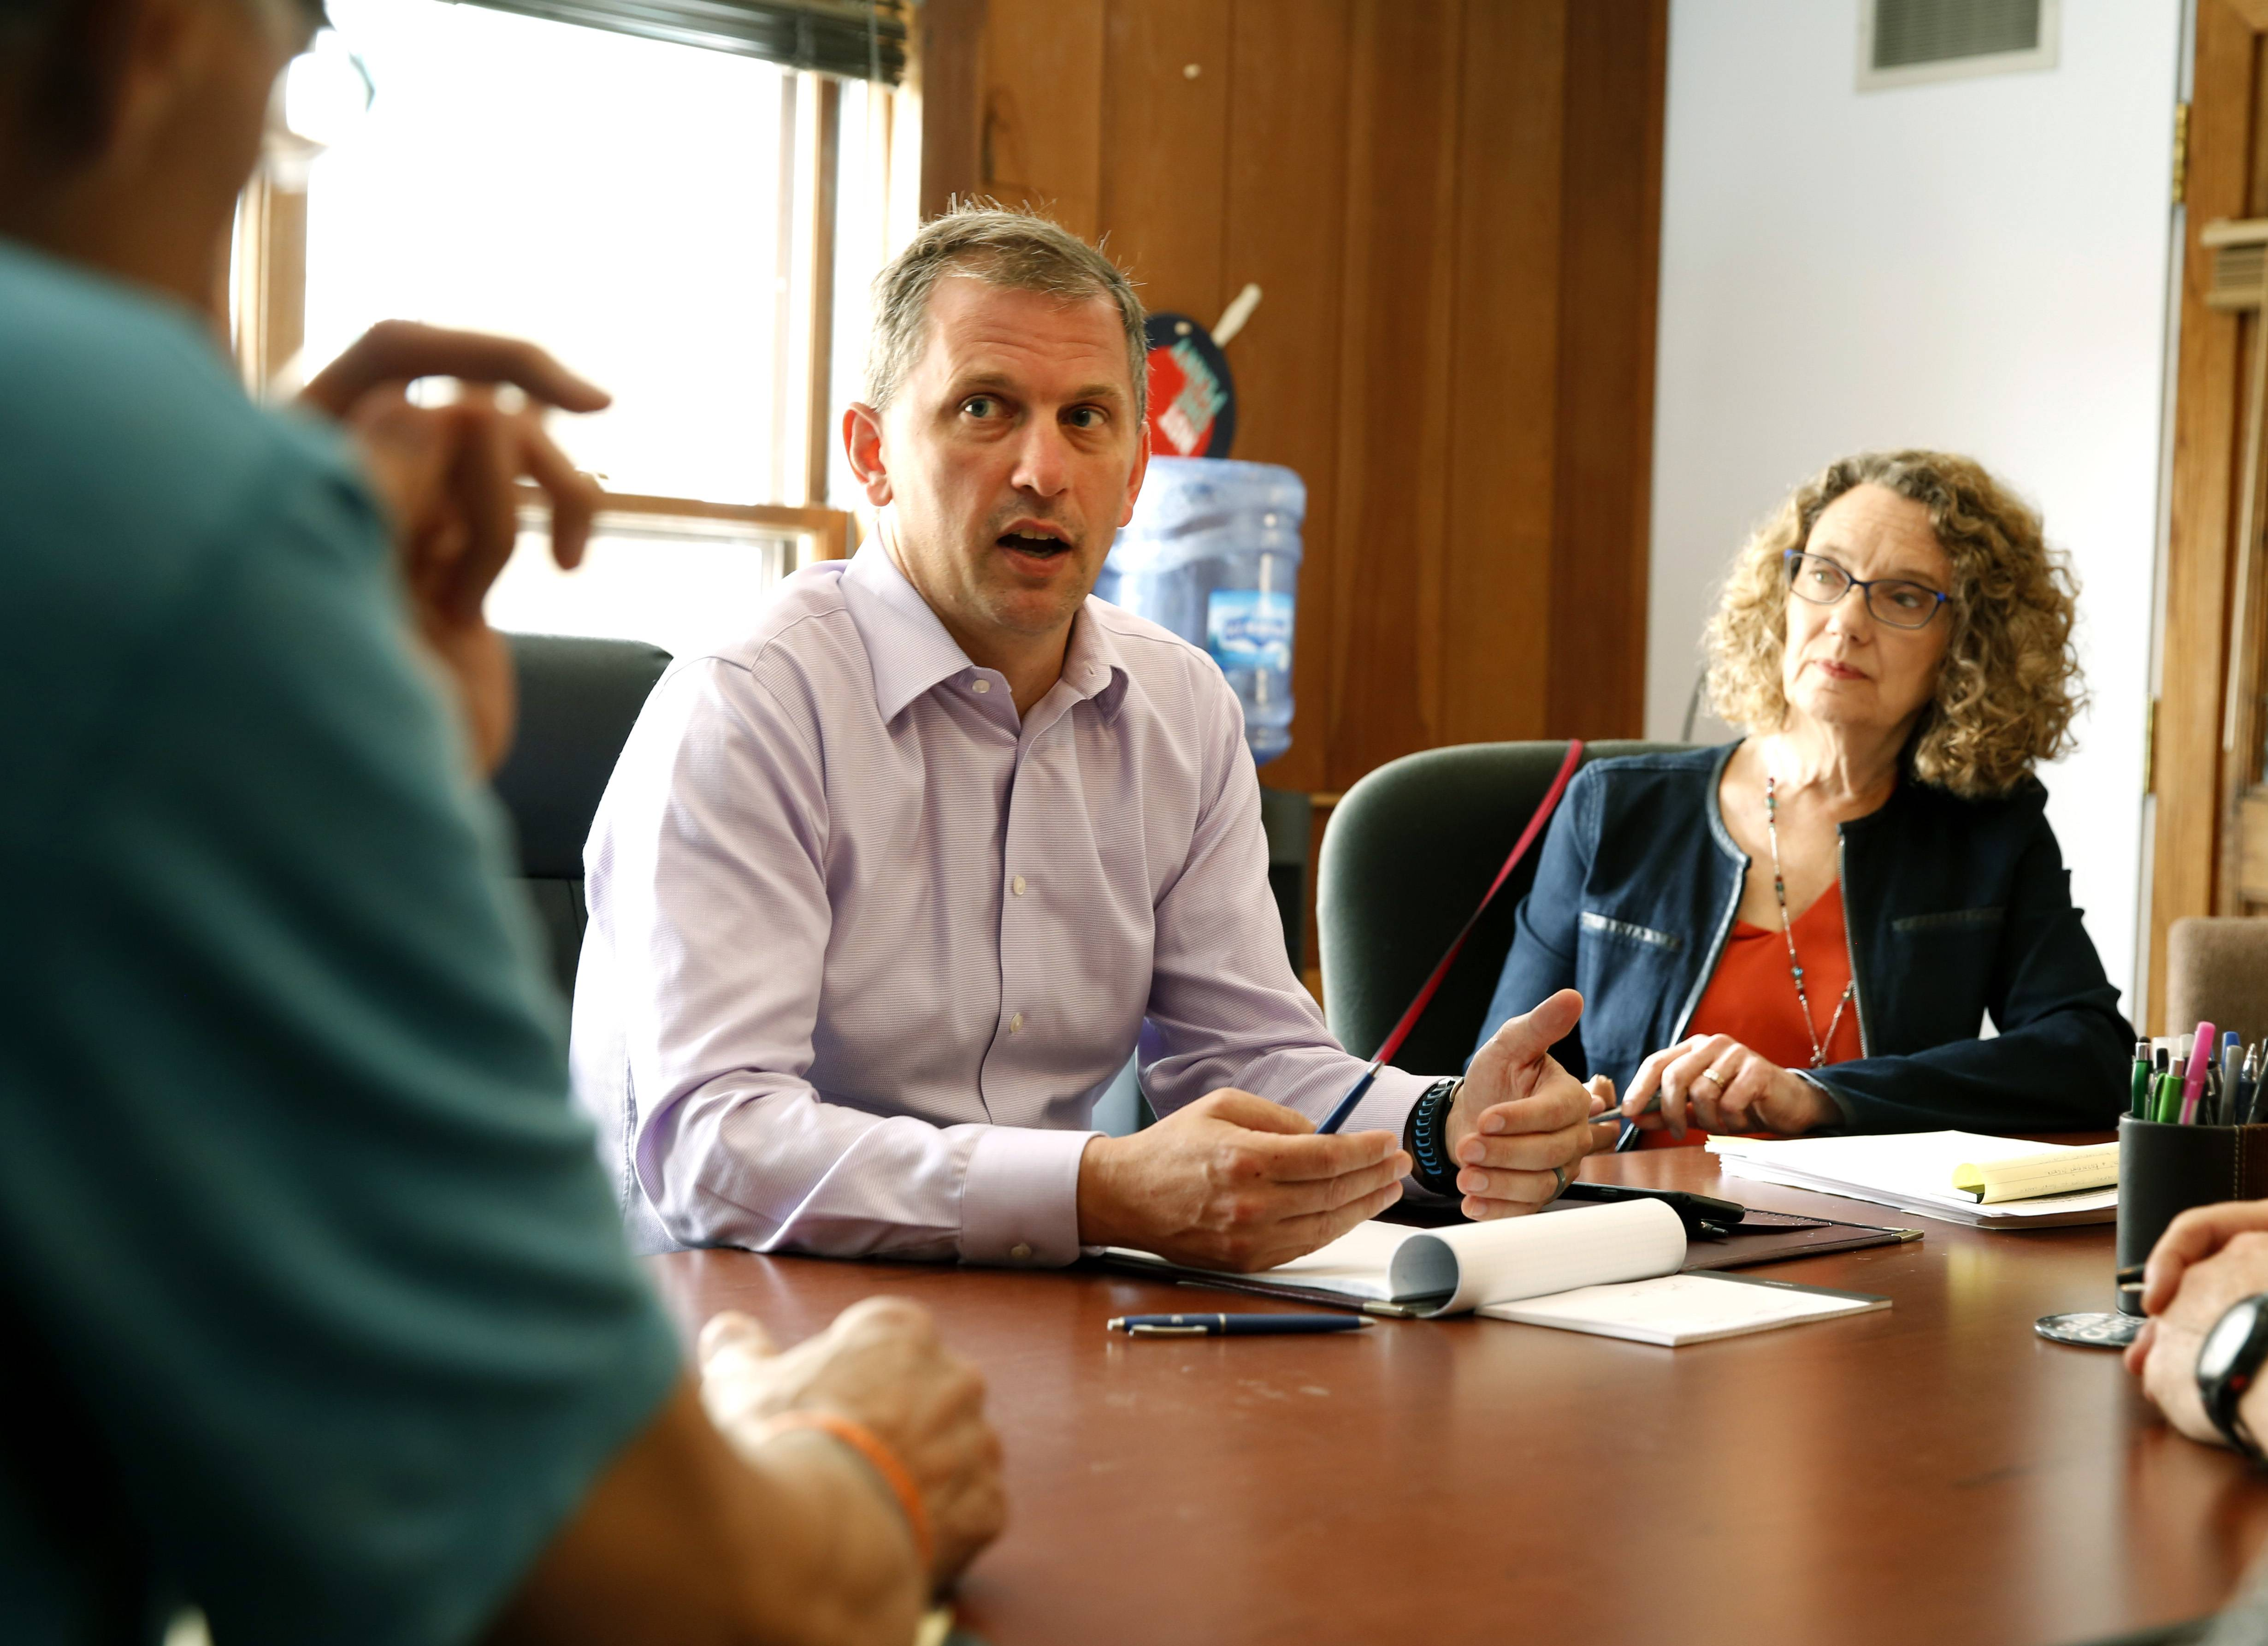 Meeting with constituents, such as Sandra Alexander of Glen Ellyn, right, is a part of the daily campaign trail for Downers Grove Democrat Sean Casten as he runs for U.S. Congress in the 6th District against incumbent Republican Rep. Peter Roskam of Wheaton.